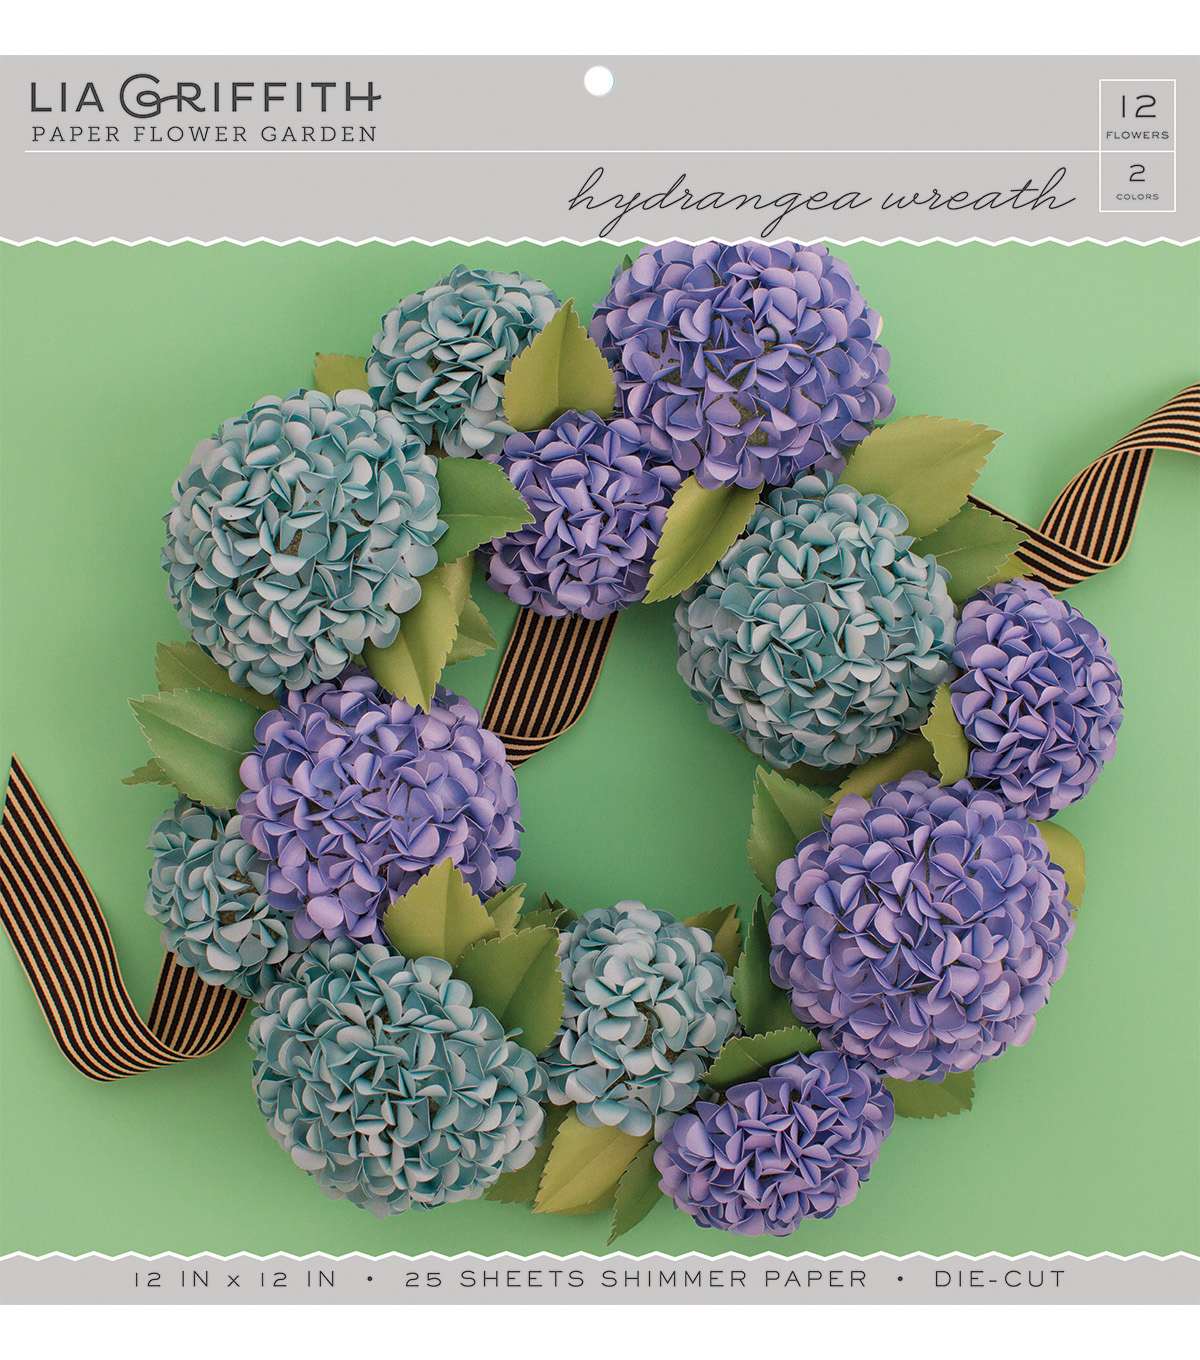 Lia Griffith Paper Flower Garden Hydrangea Wreath